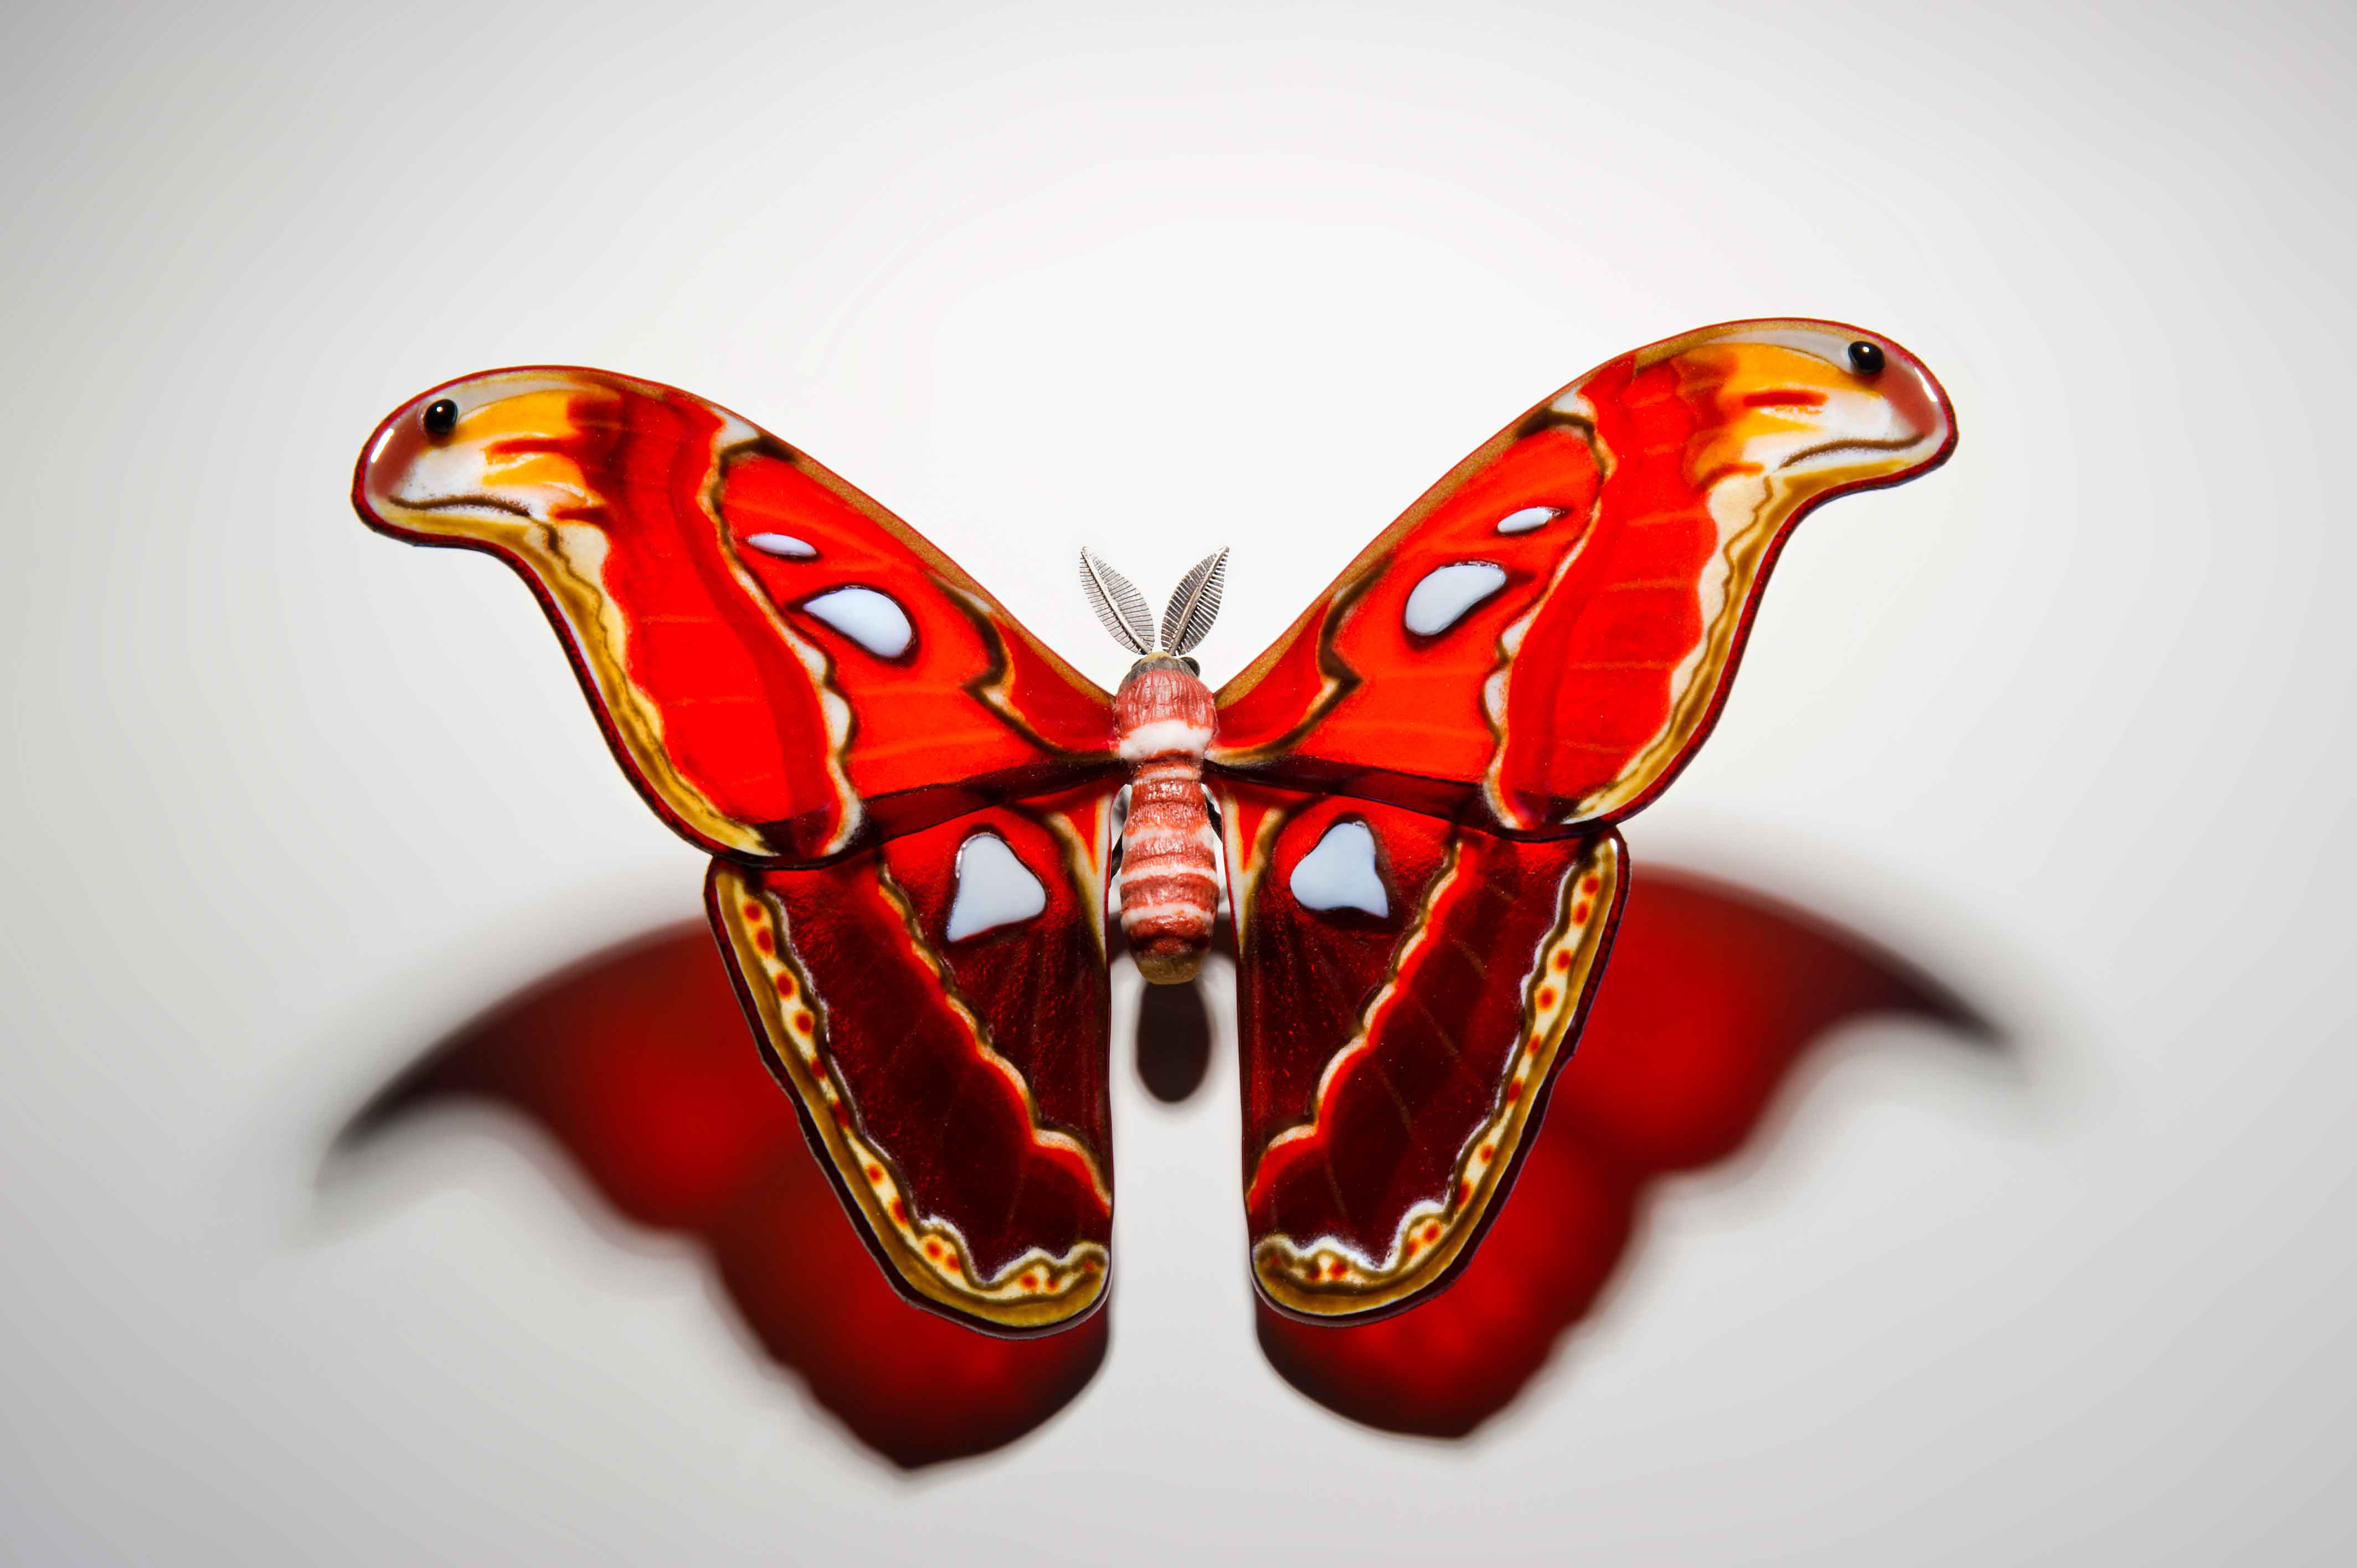 Atlas Moth by Laura Hart at the Saffron Walden Gallery